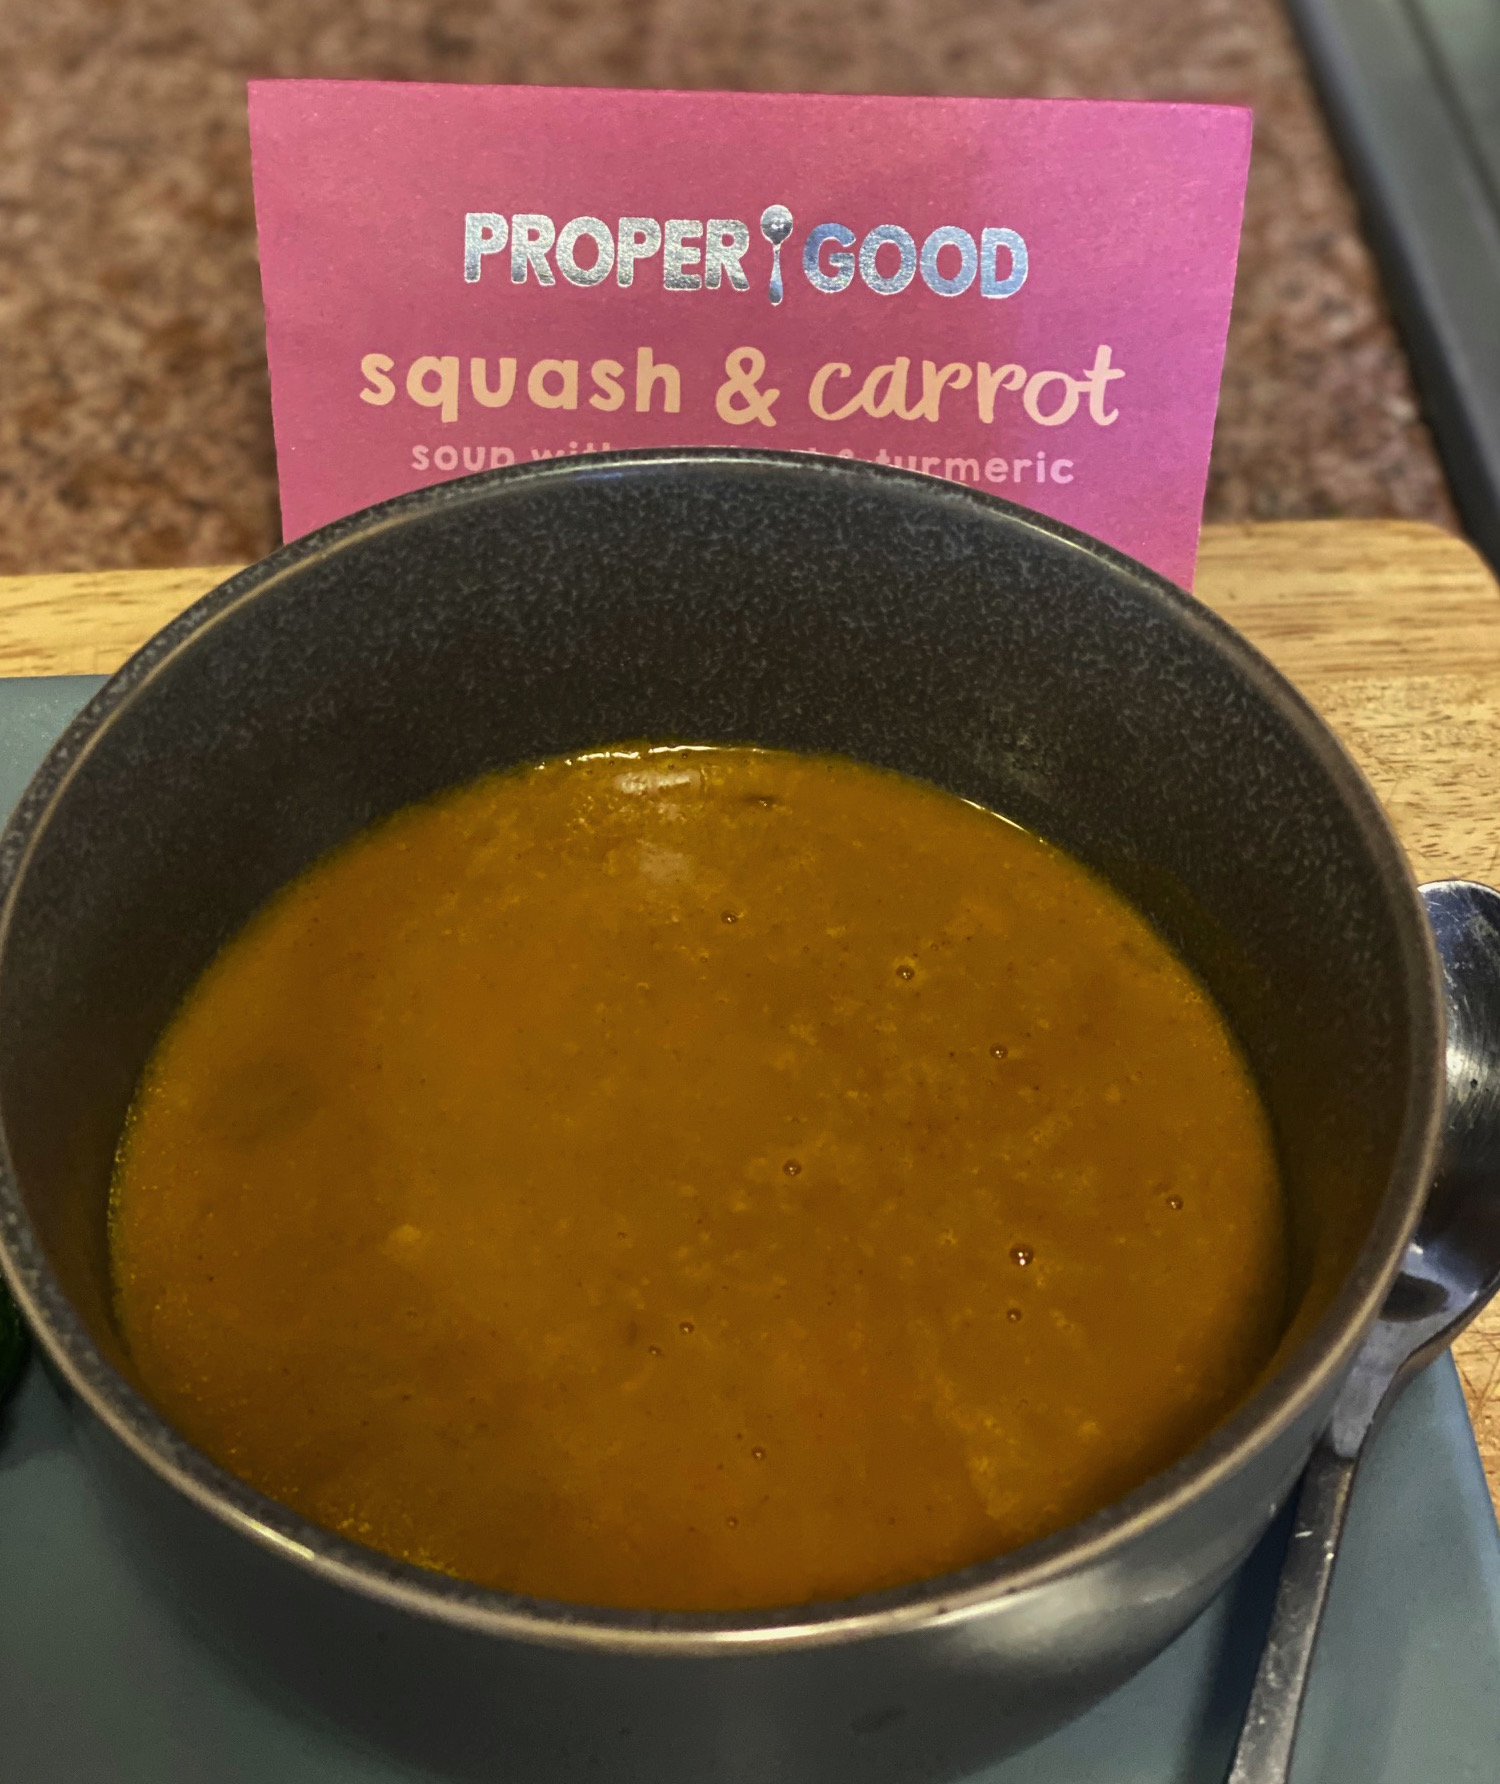 Healthy and Convenient Soup Options from Proper Good